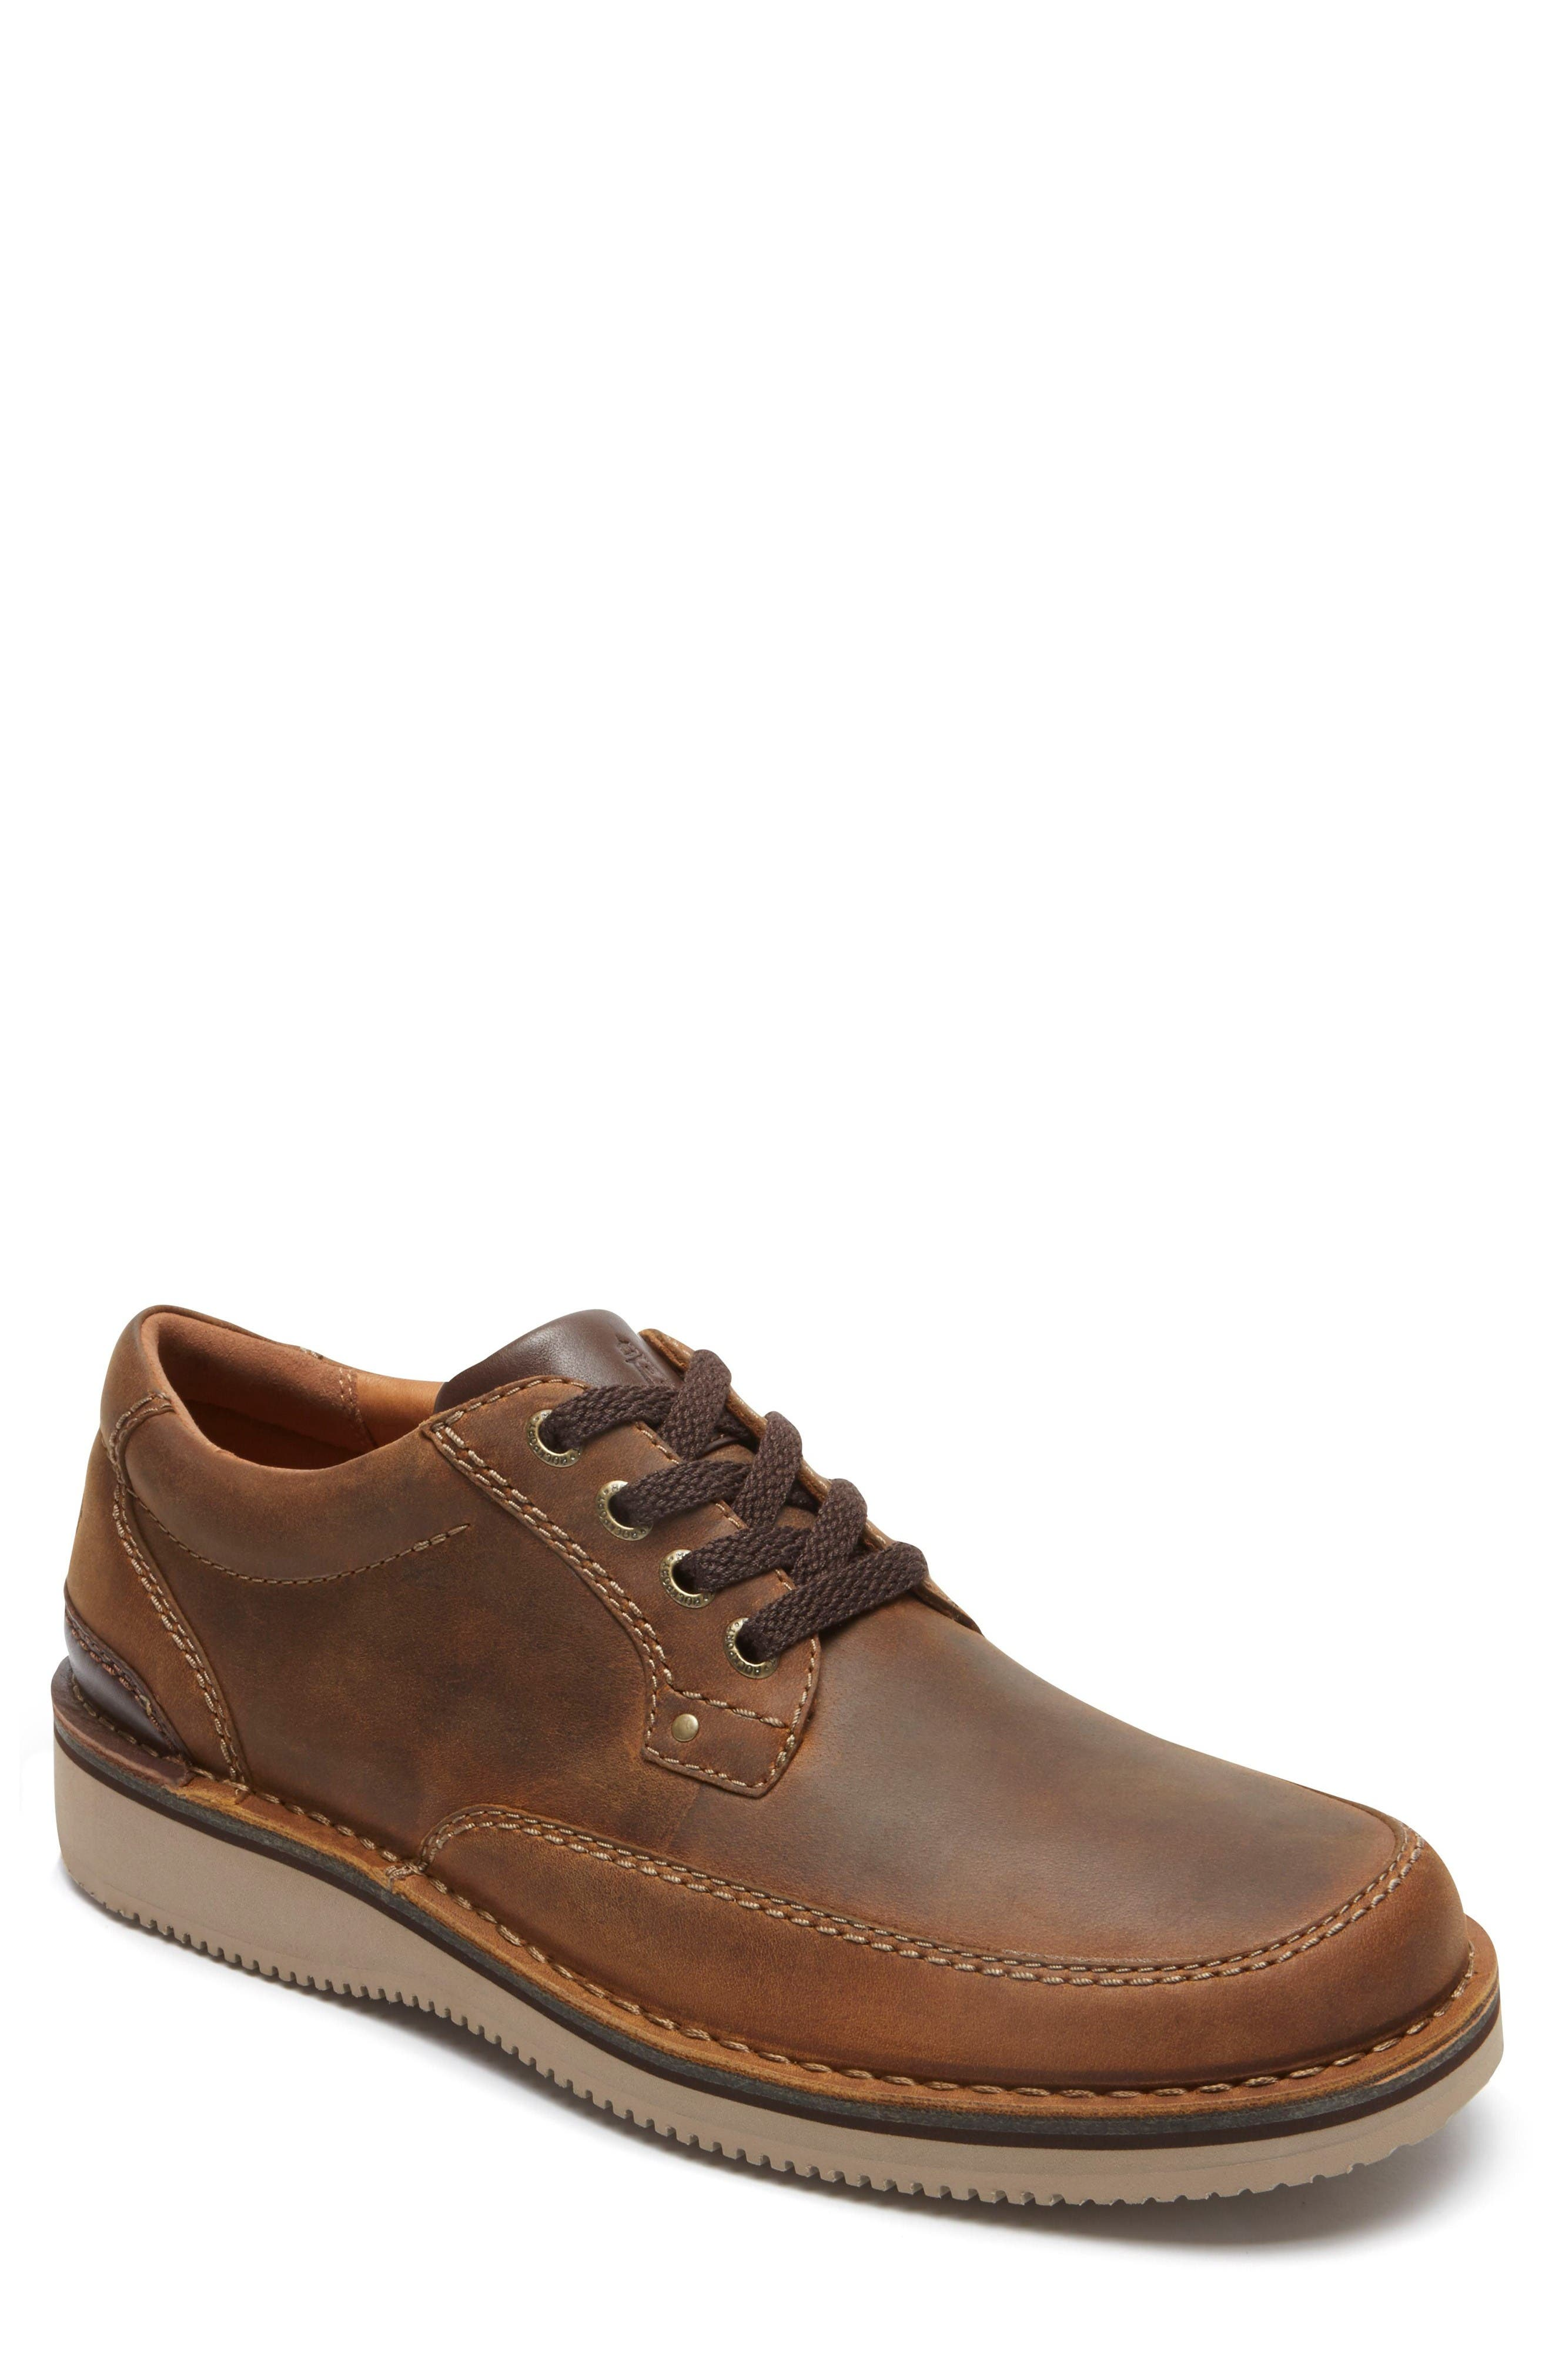 Prestige Point Mudguard Oxford,                             Main thumbnail 1, color,                             Beeswax Leather